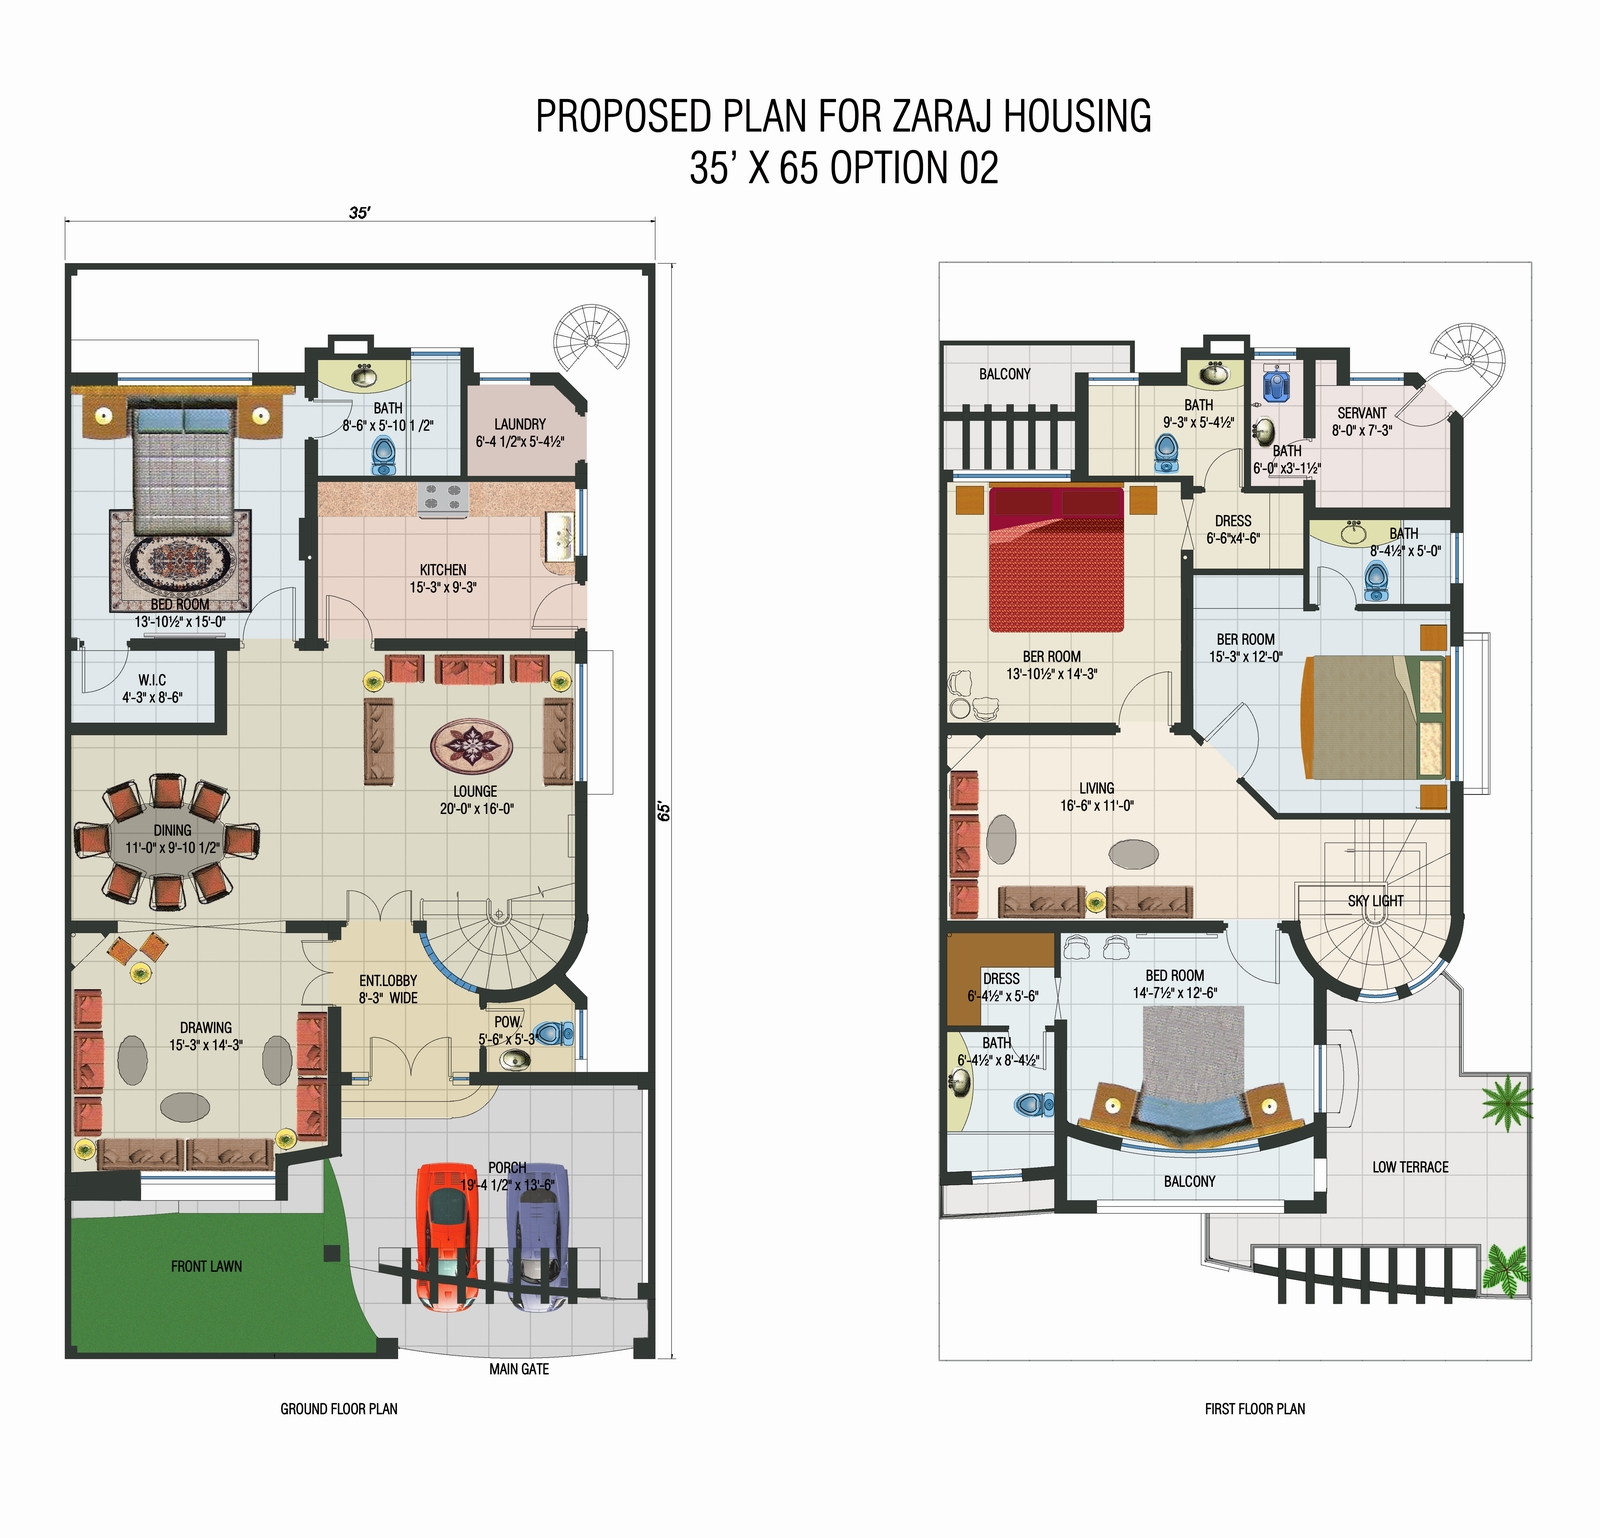 ... Pakistan 10 Marla House Plan Design together with 10 Marla House Plan